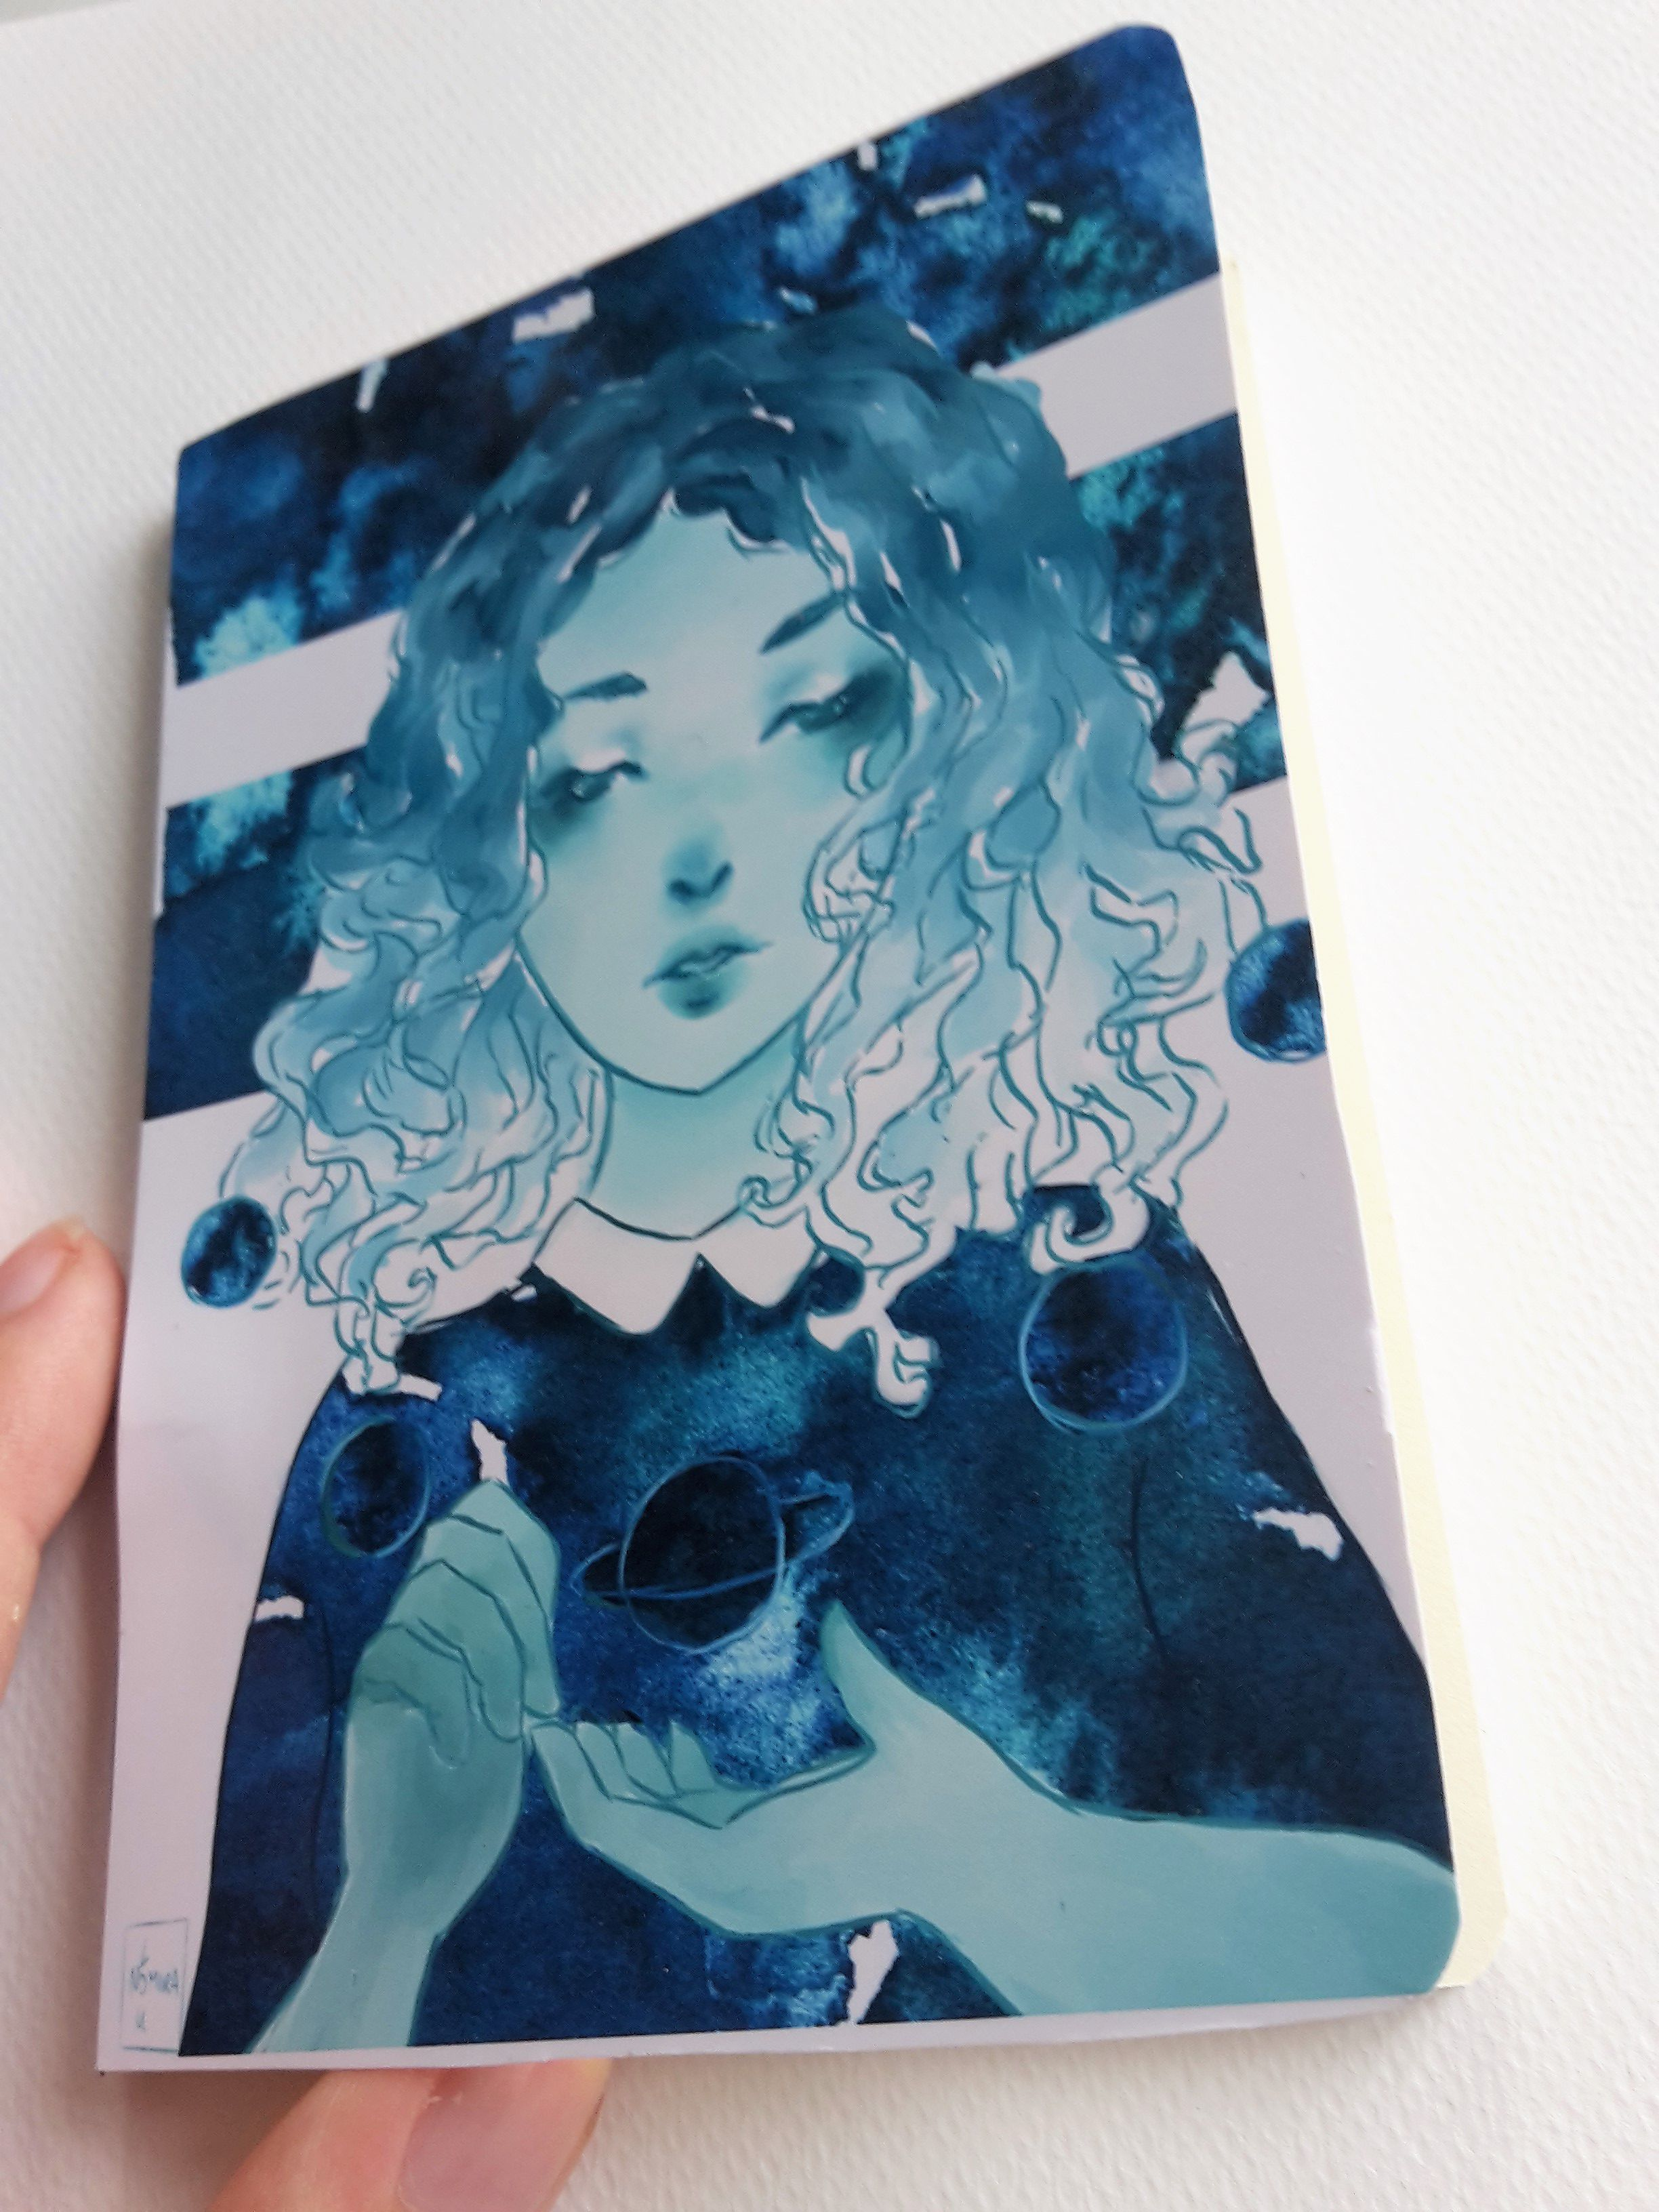 girl artist cute diy galaxy bookantasy notebook watercolor handmade color planets nebula sketchbook drawing digitalart painting art